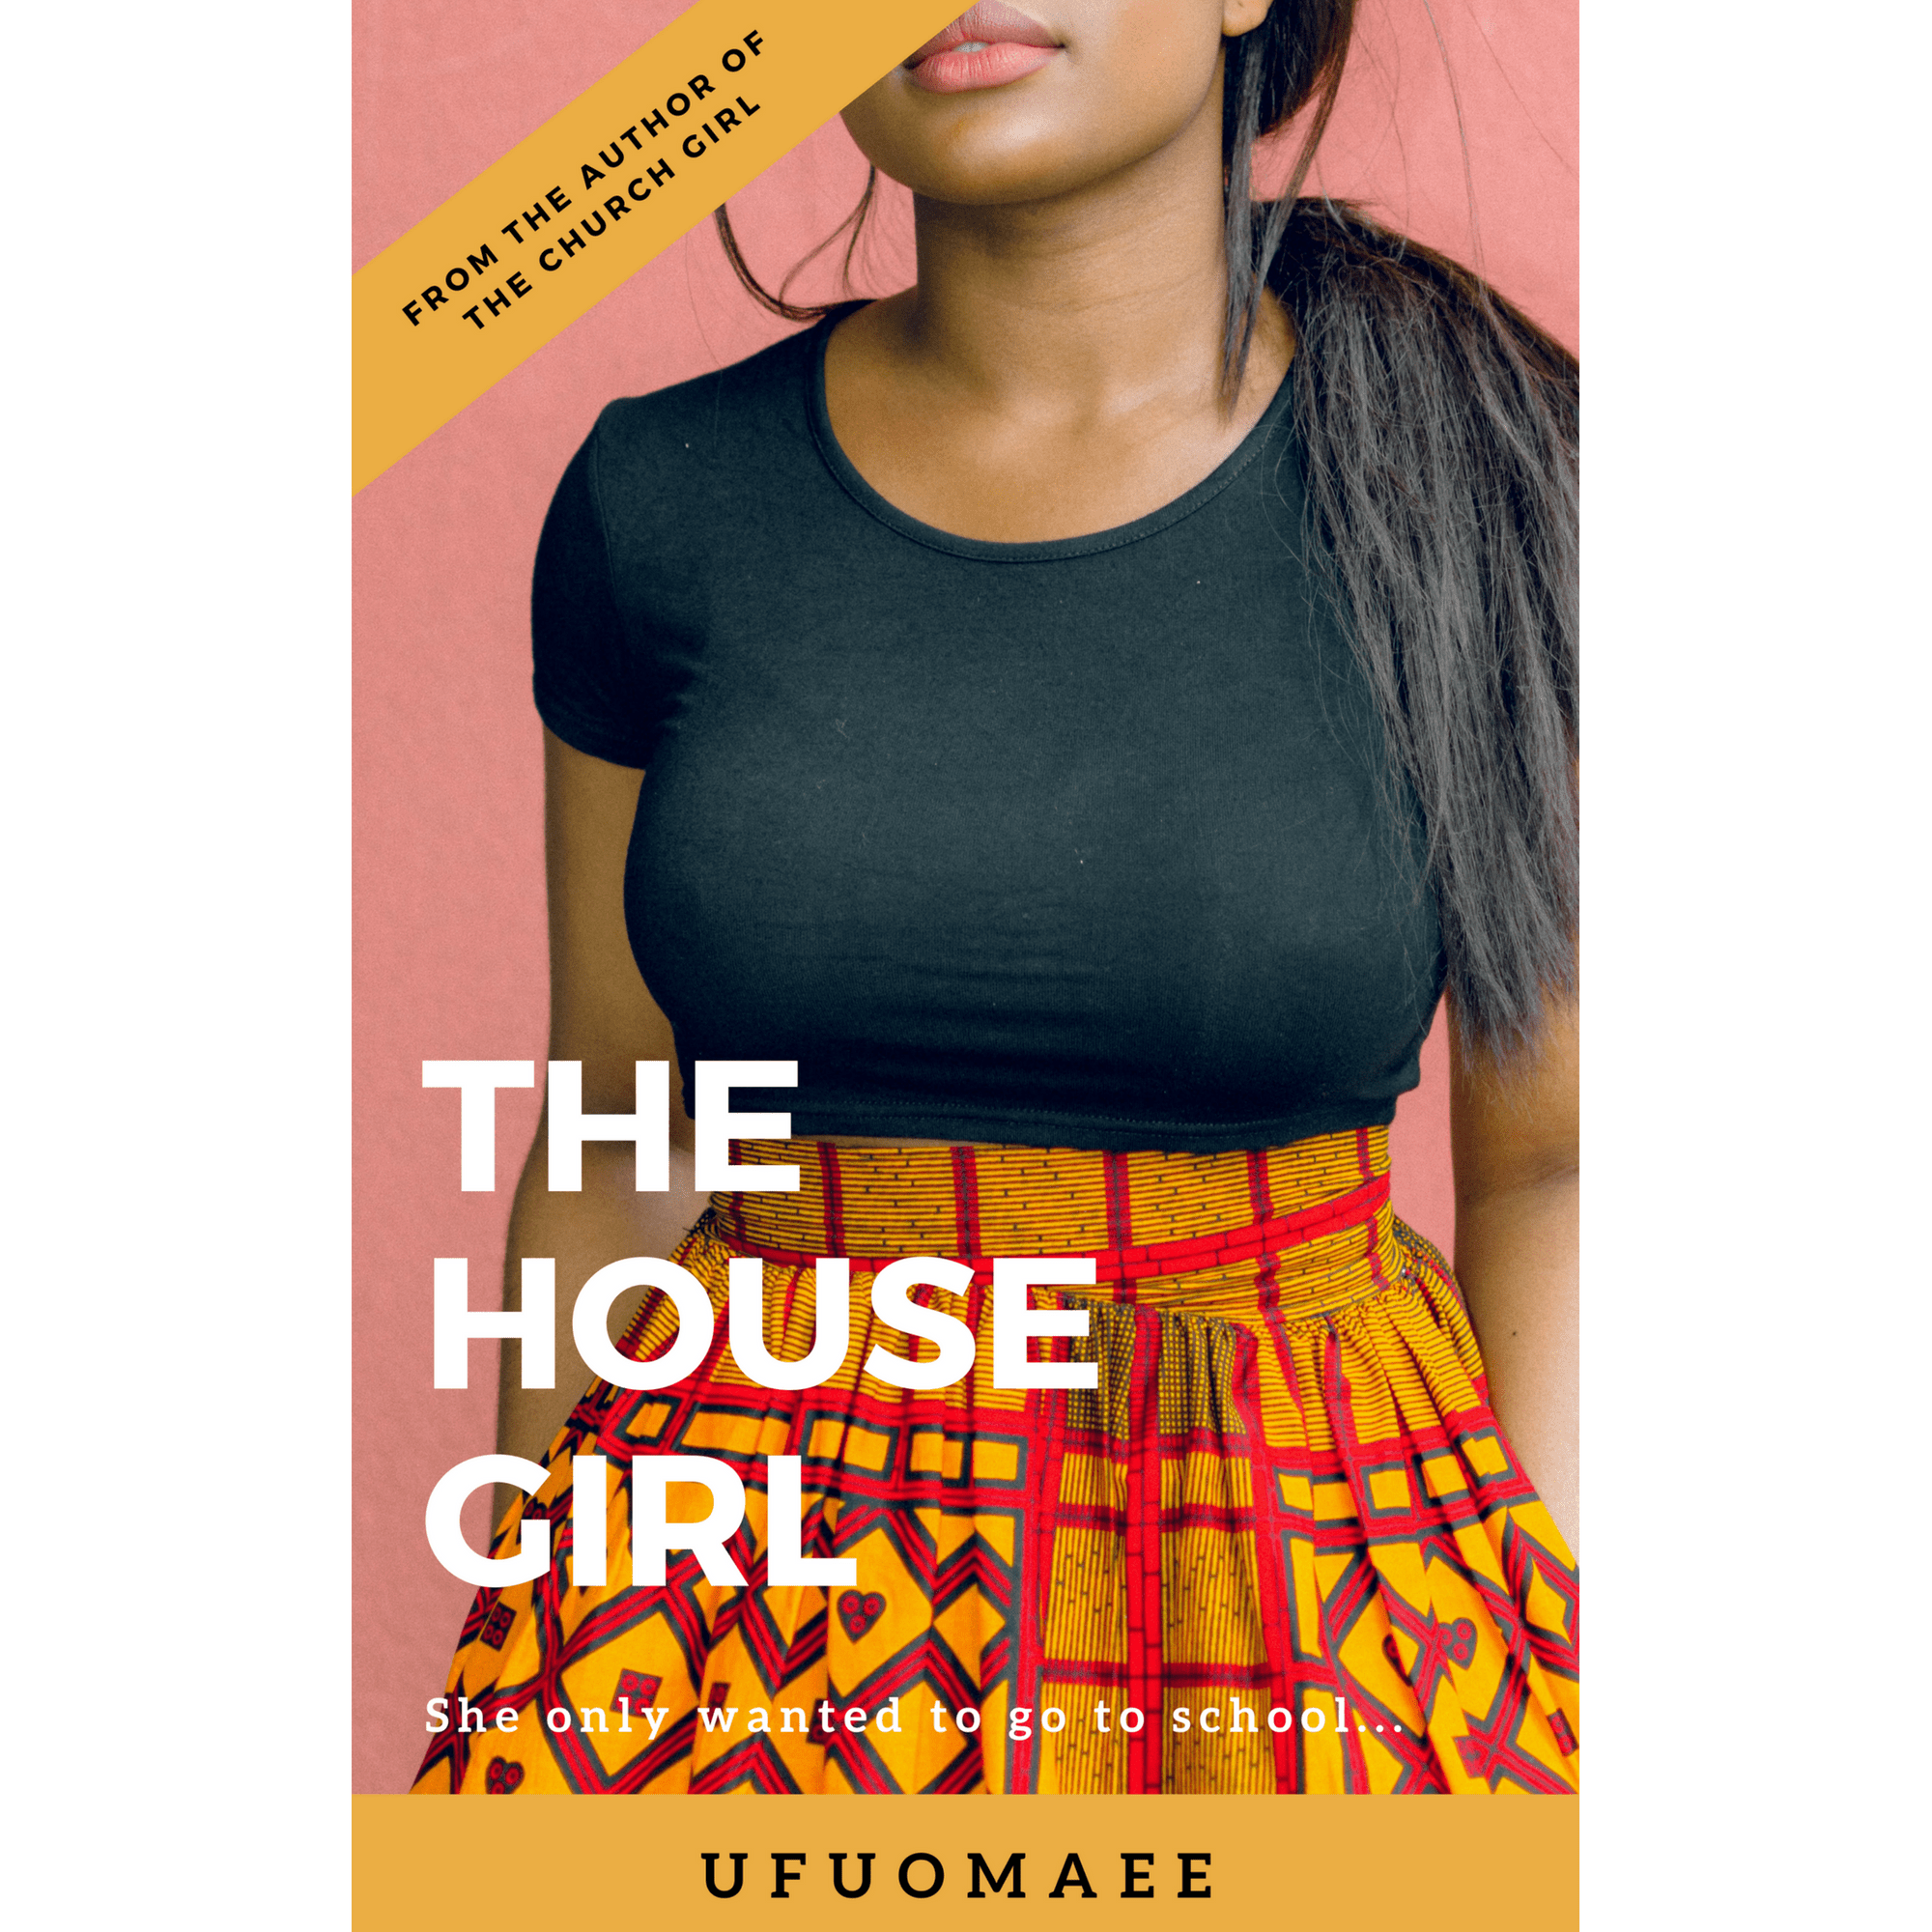 The House Girl is now available to pre-order